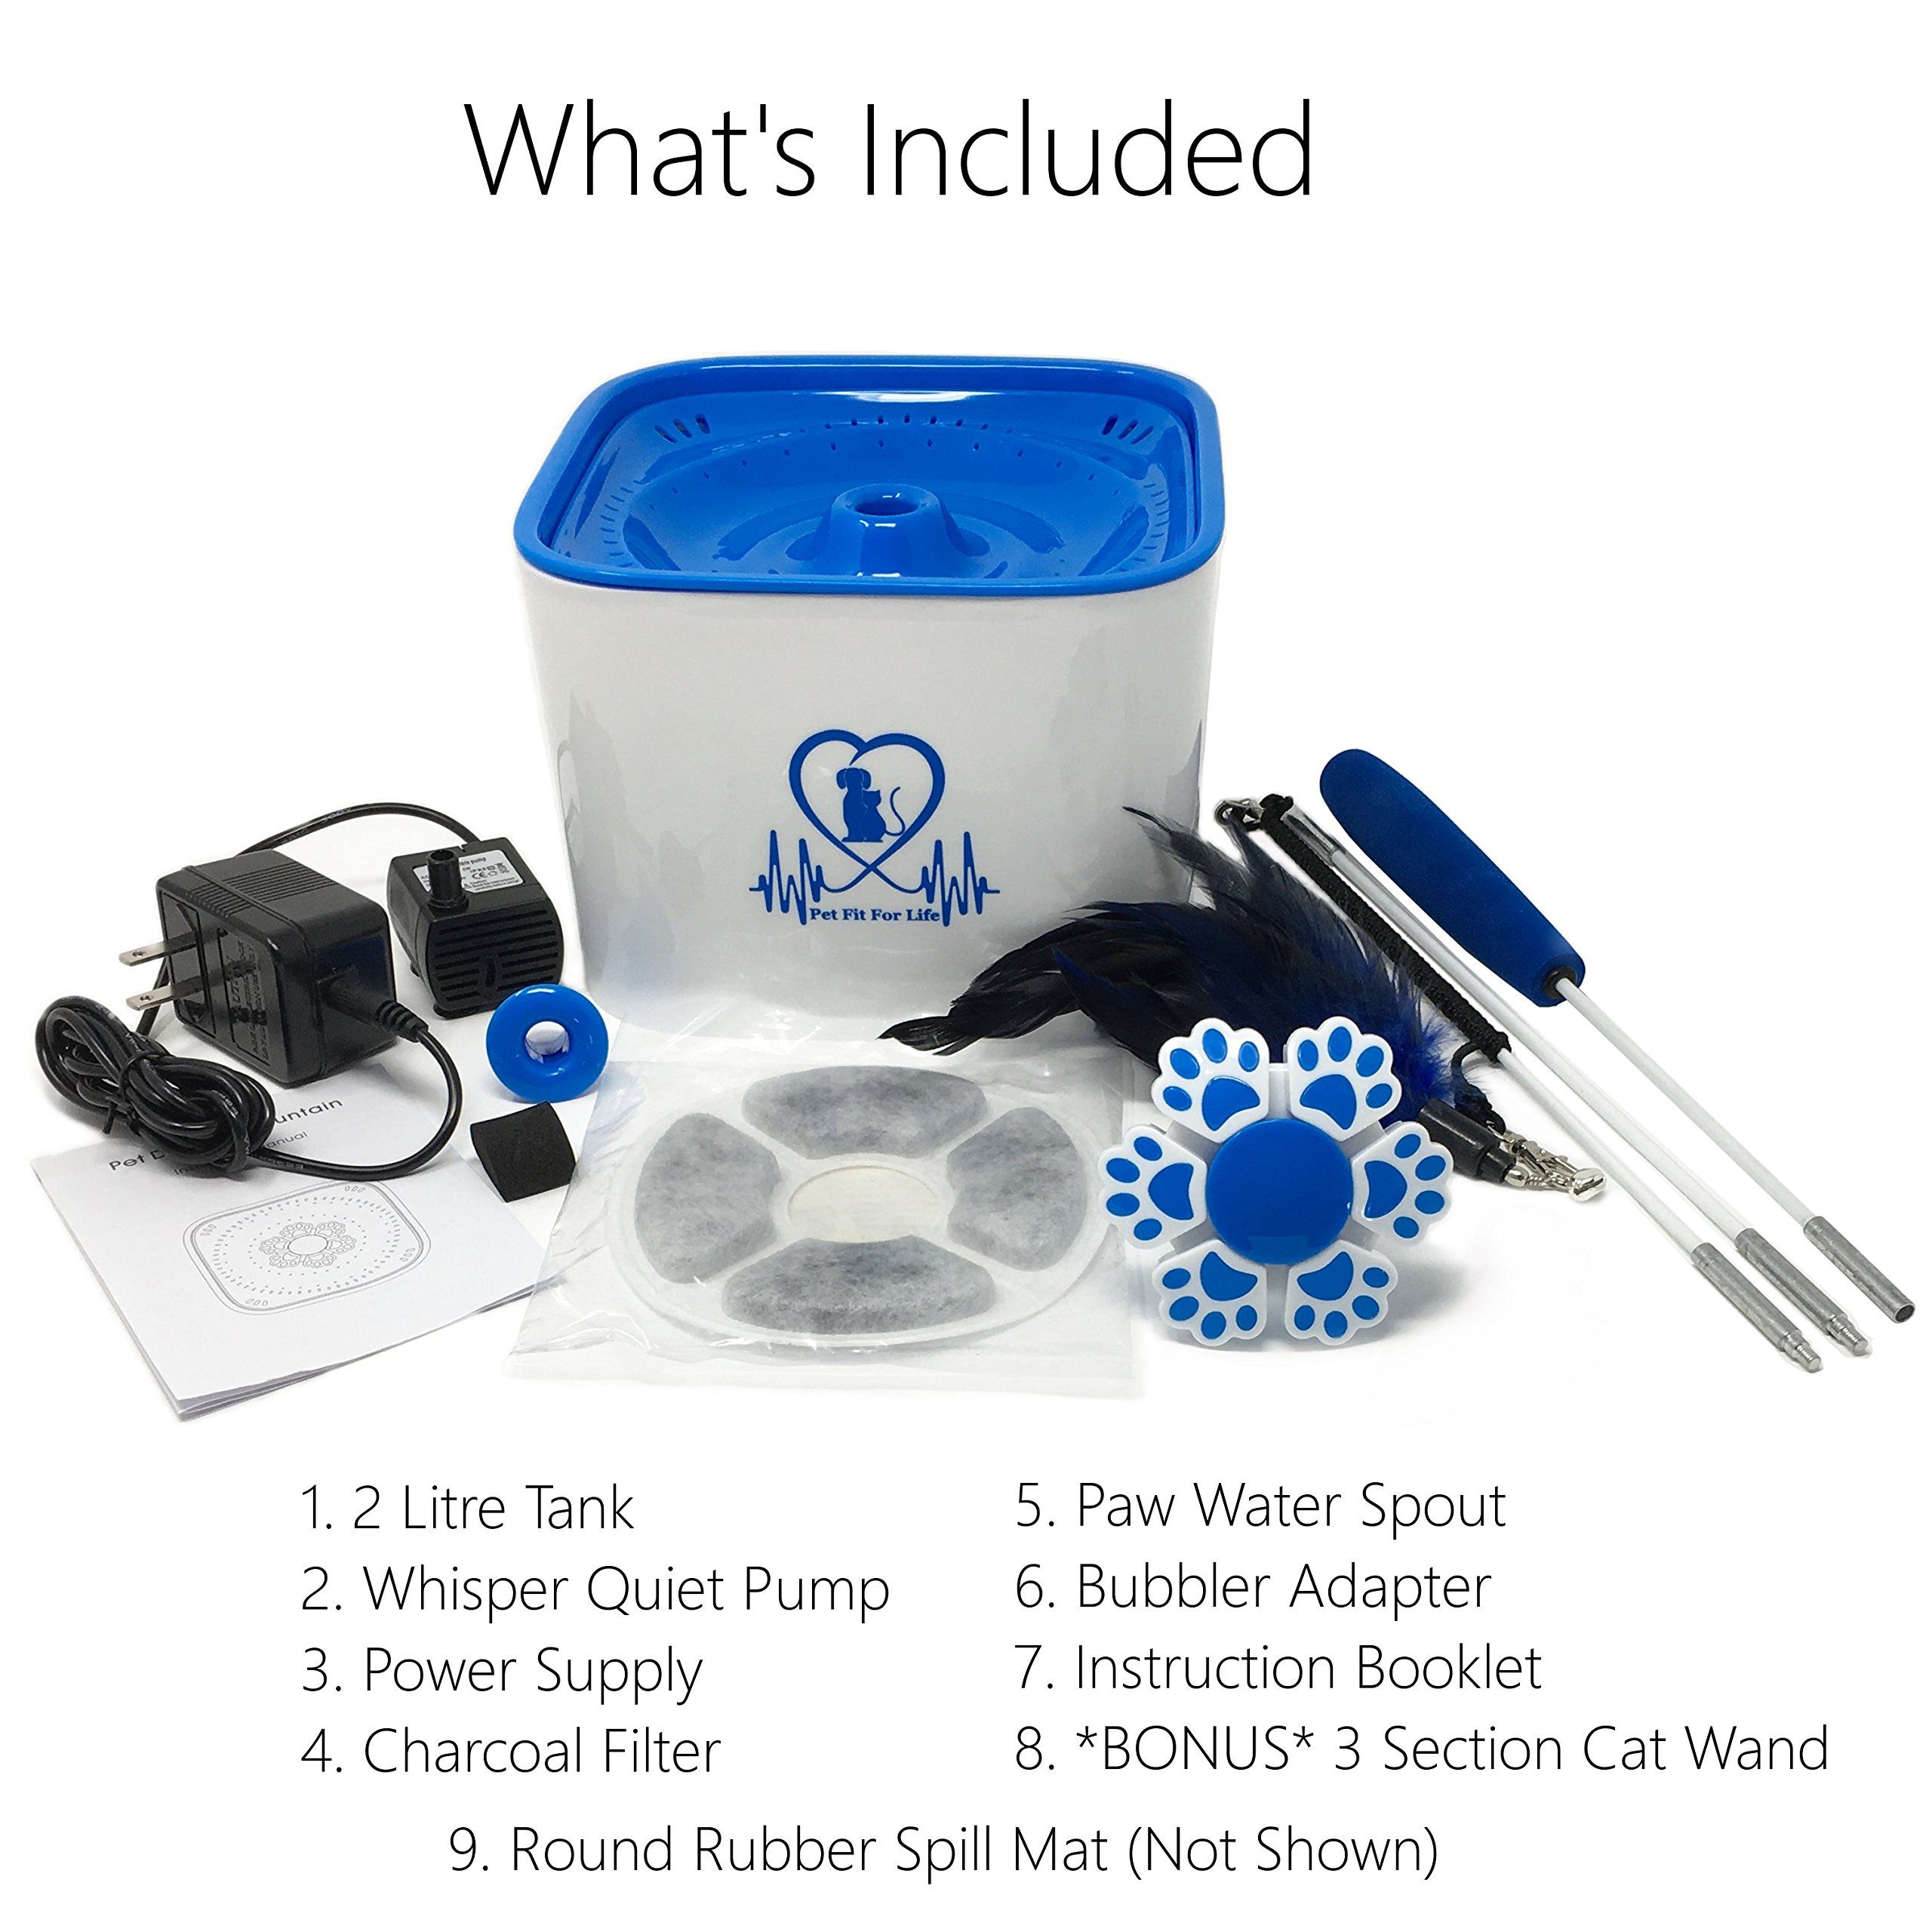 Pet Fit For Life Water Fountain Dispenser Plus Bonus Cat Wand and Mat - 2 Liter Super Quiet Automatic Water Bowl with Charcoal Filter for Dogs, Cats, Birds and Small Animals by Pet Fit For Life (Image #3)